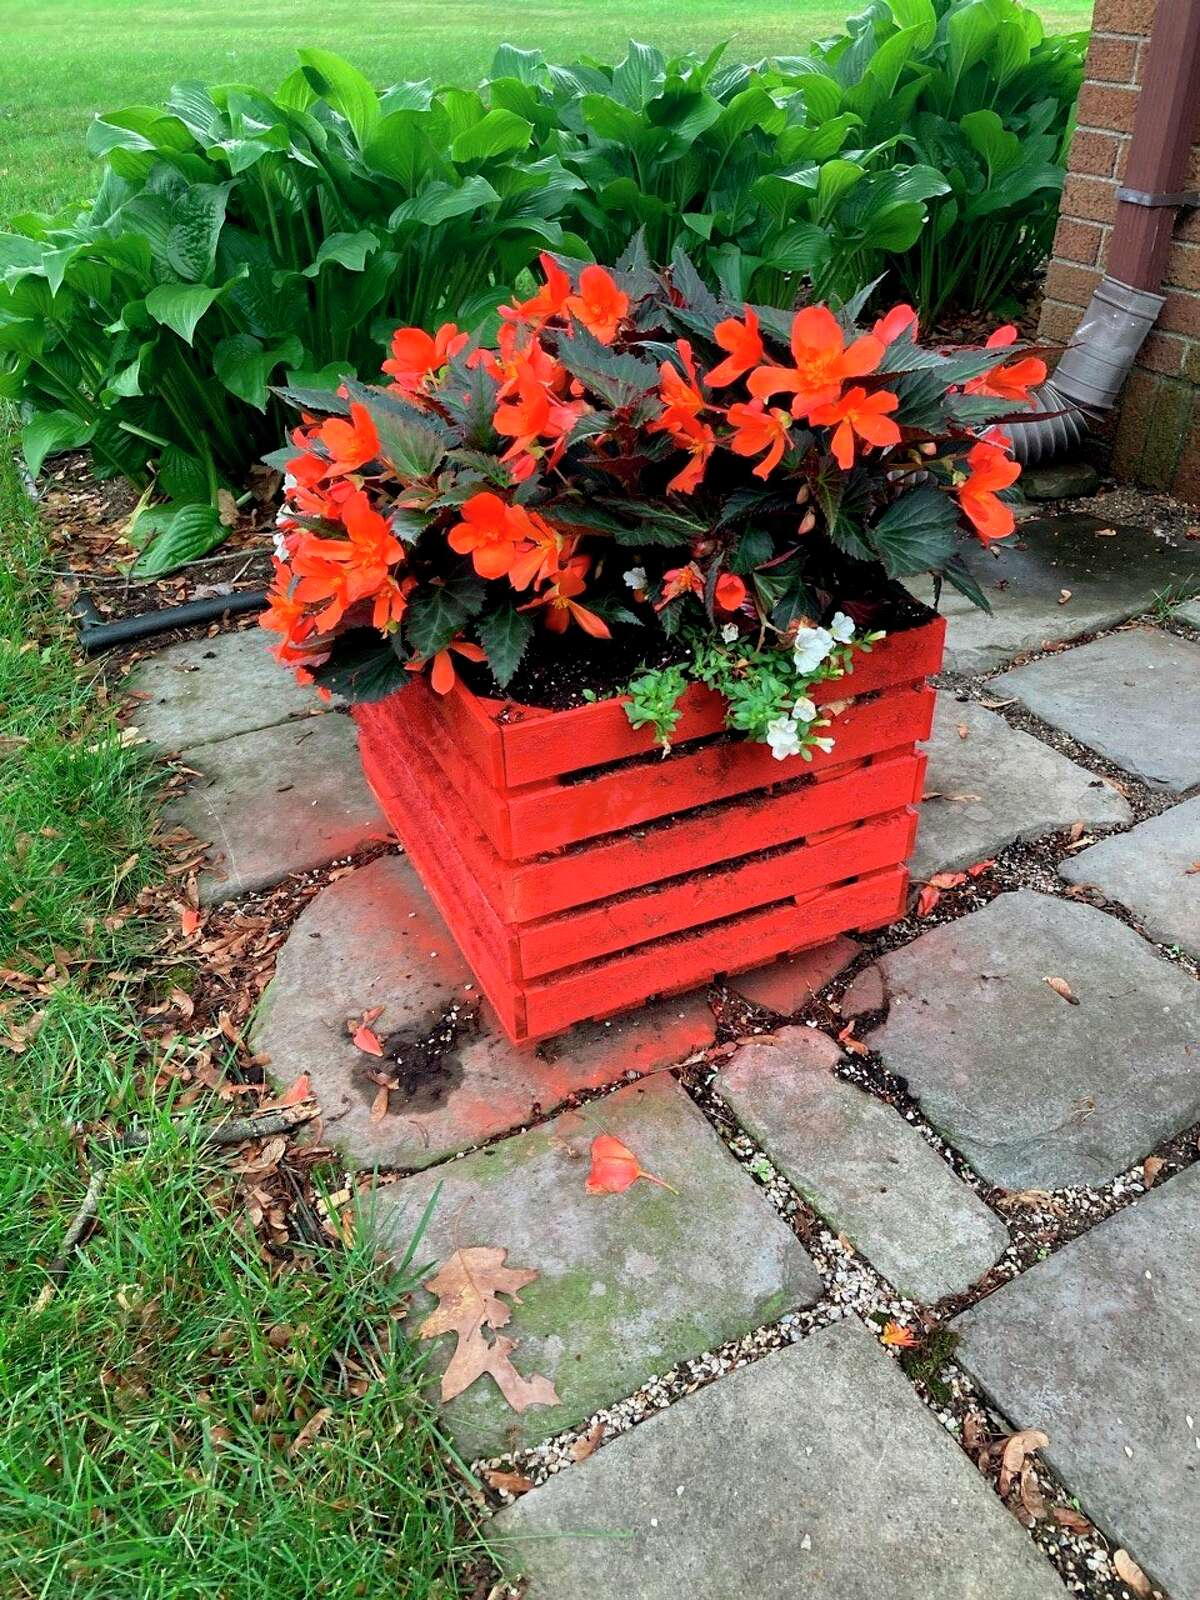 An unused wood crate, some spray paint, potting soil and a few plants make for an inexpensive and colorful planter, easily created at home. (Photo provided/Ed Hutchison)